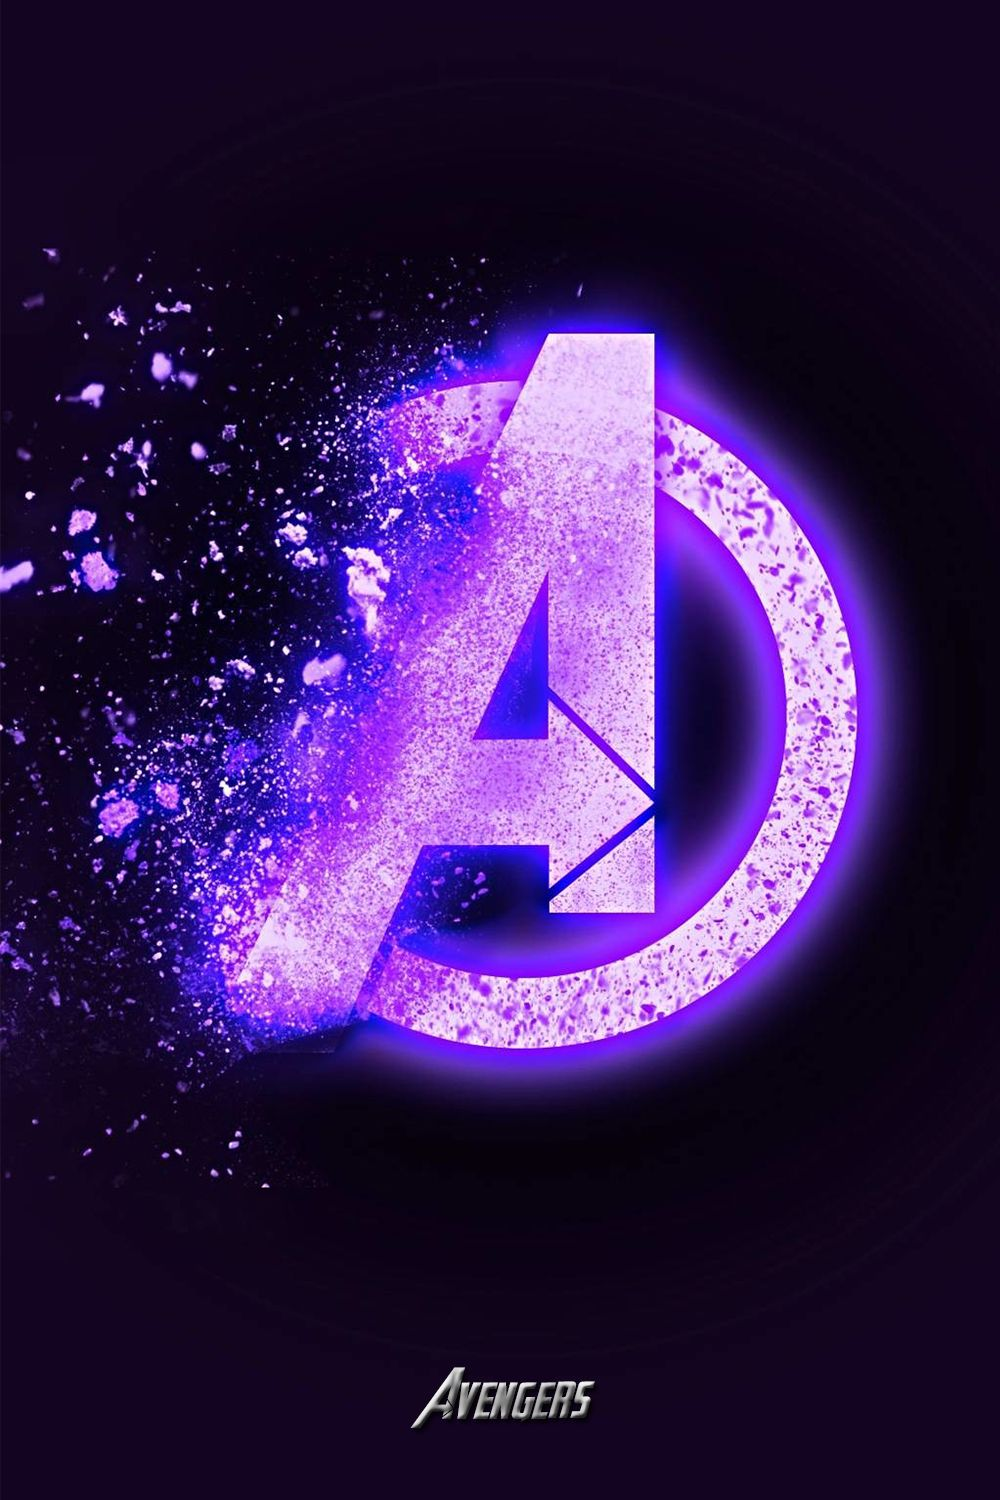 Best Avengers Wallpaper HD Free Download in 2020